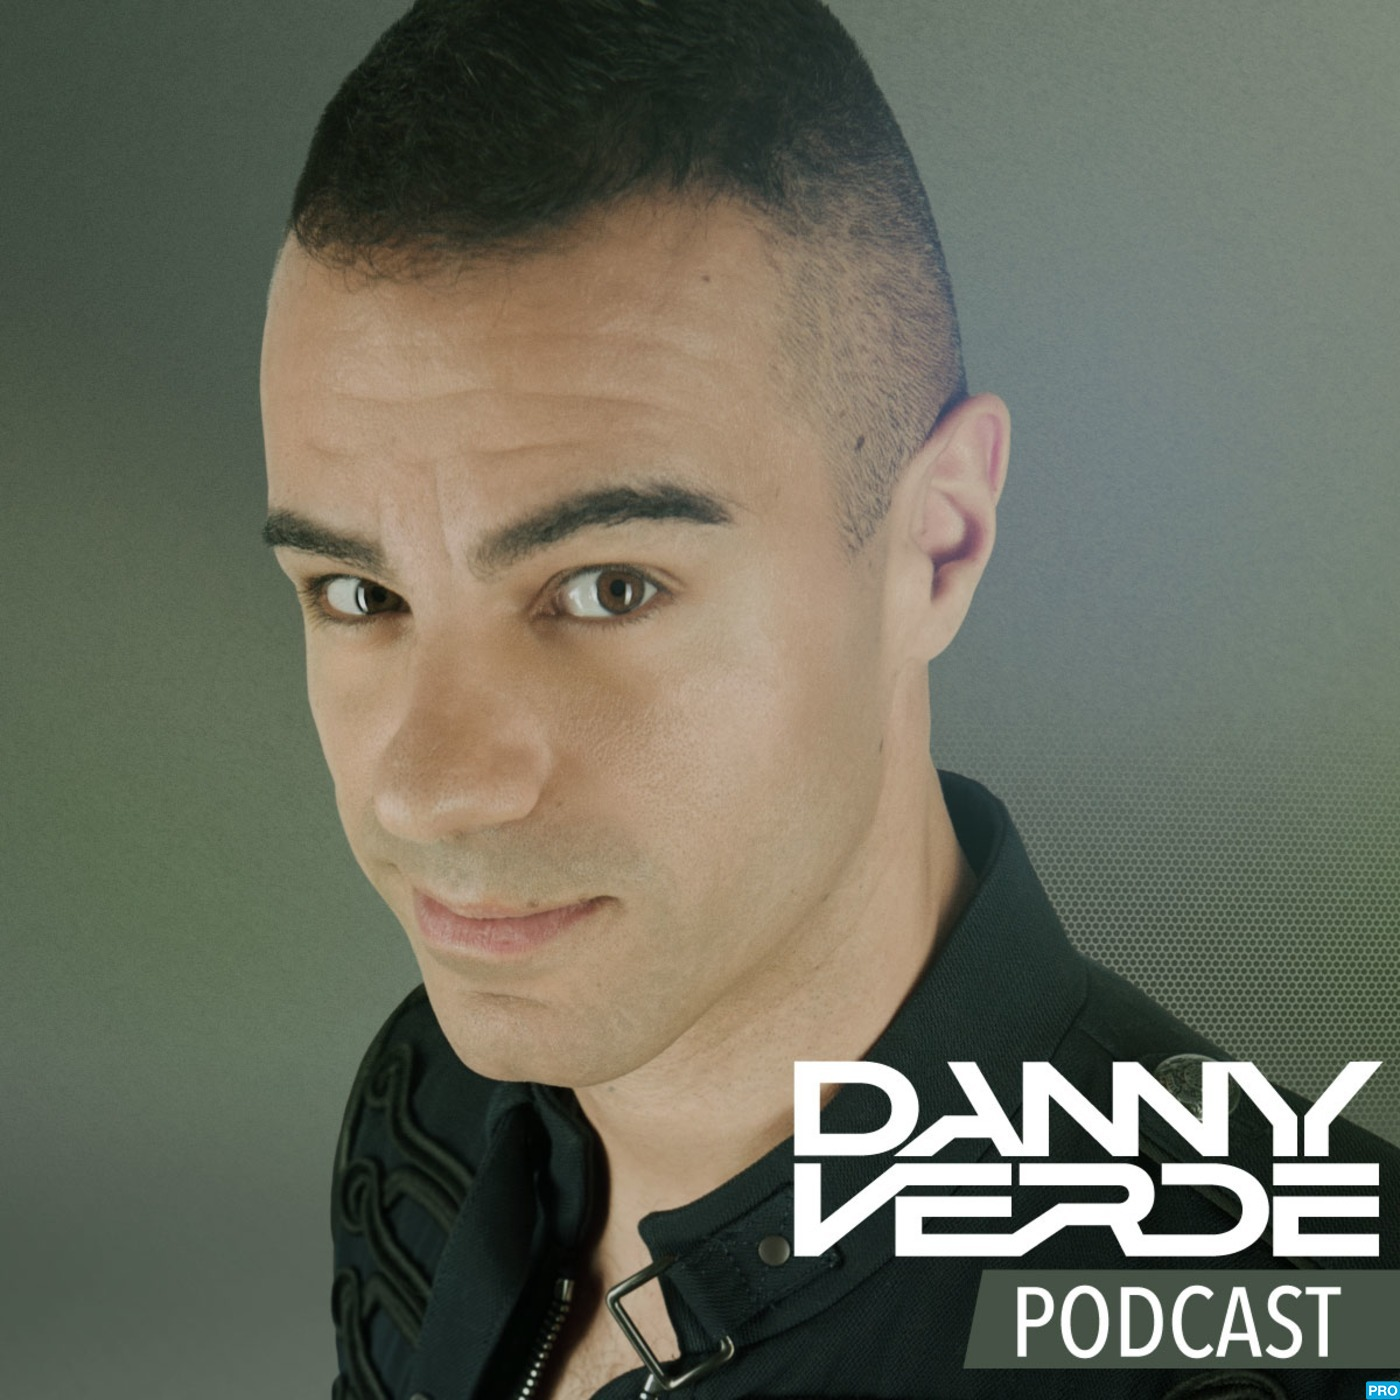 Danny Verde podcast